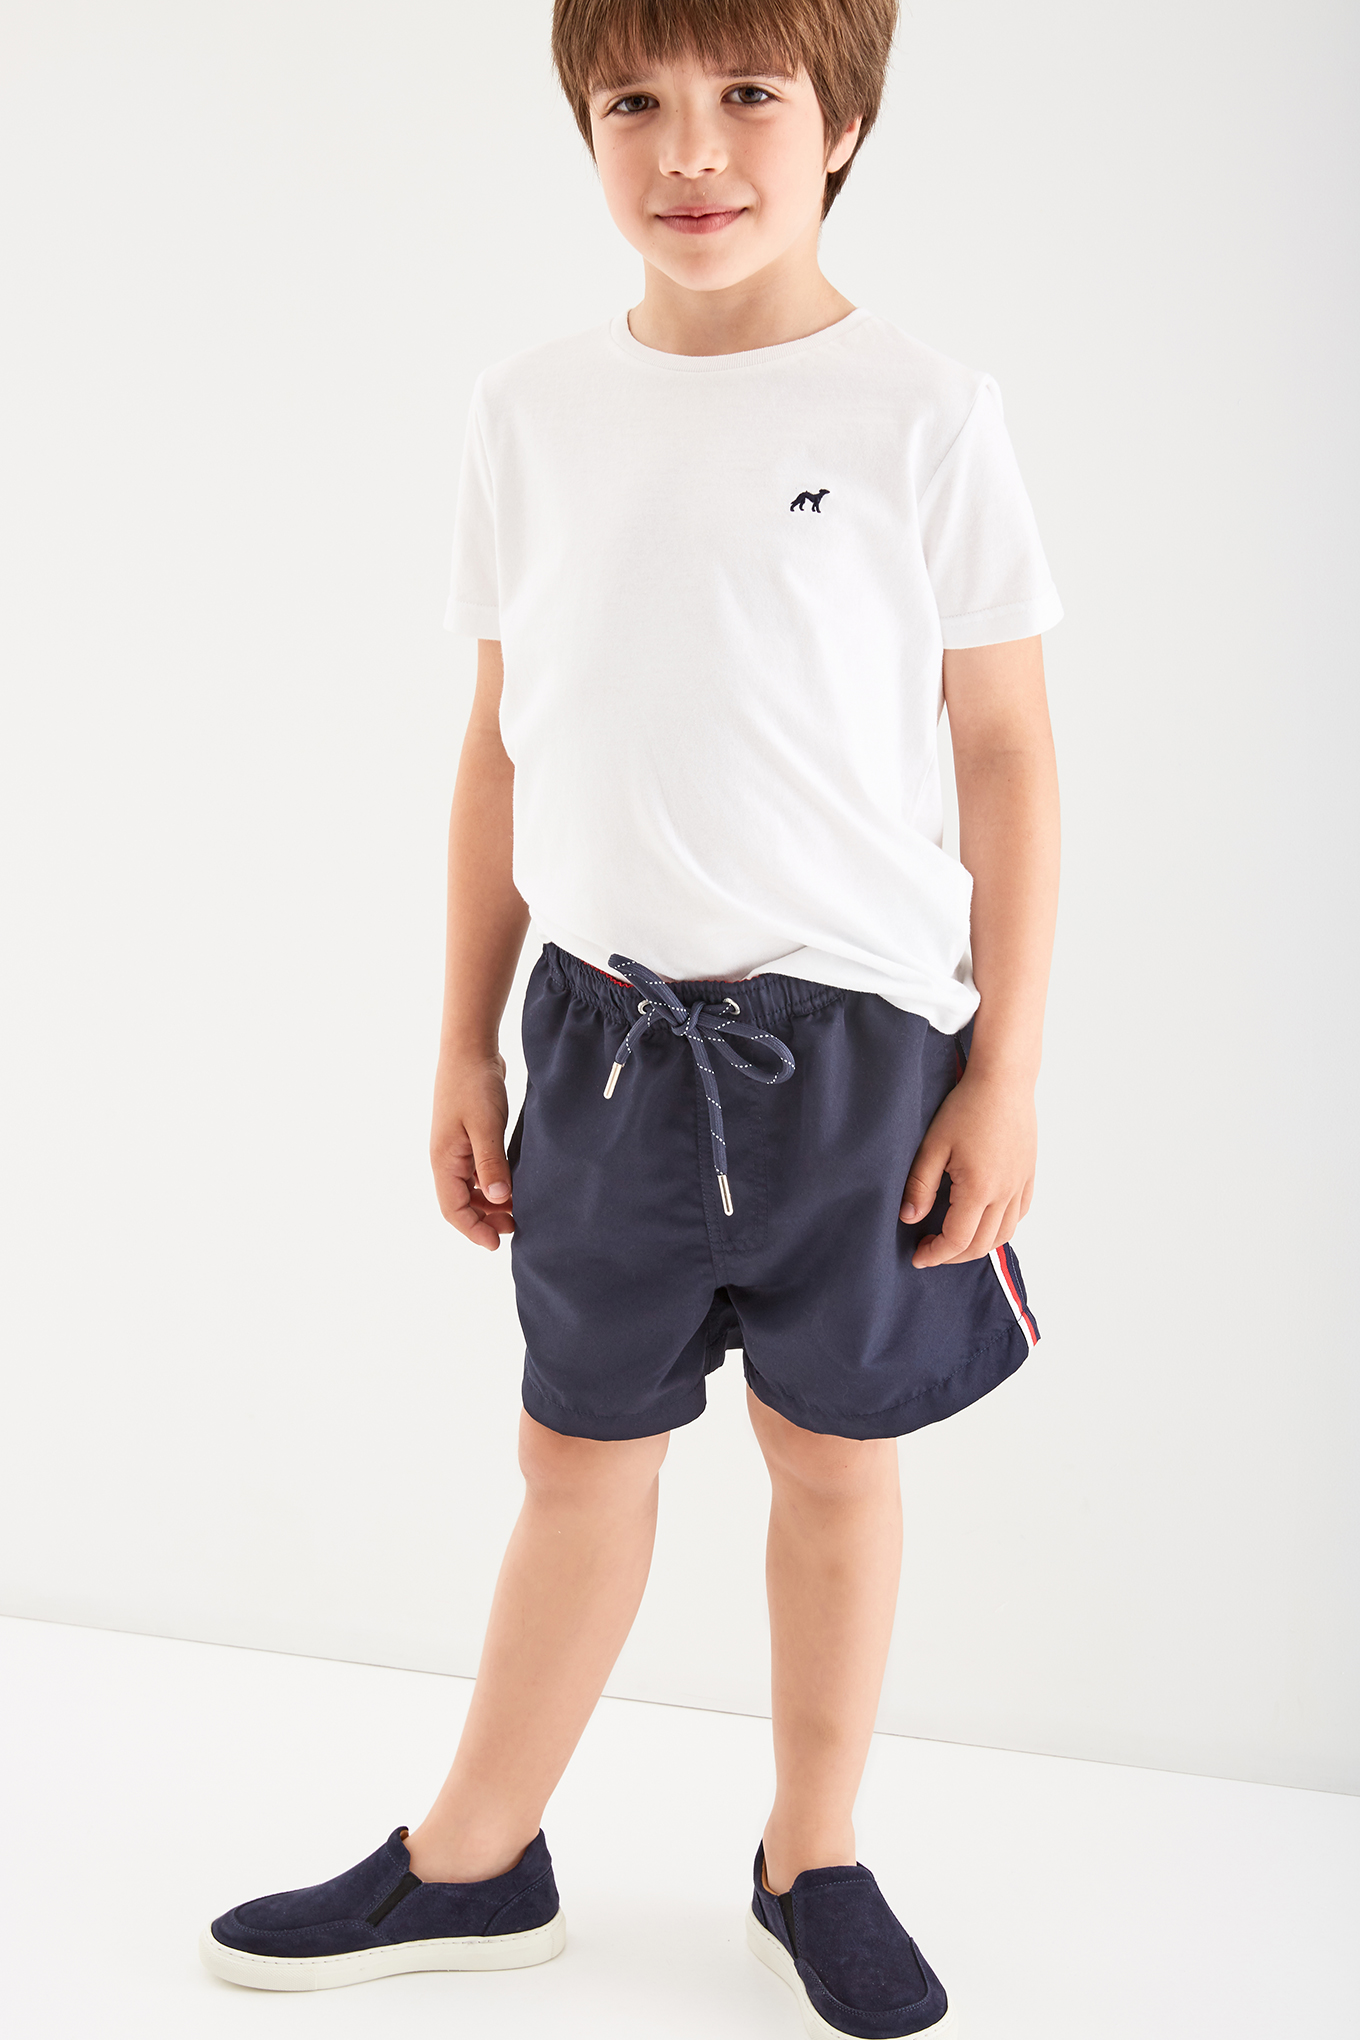 Beachwear Shorts Dark Blue Sport Boy